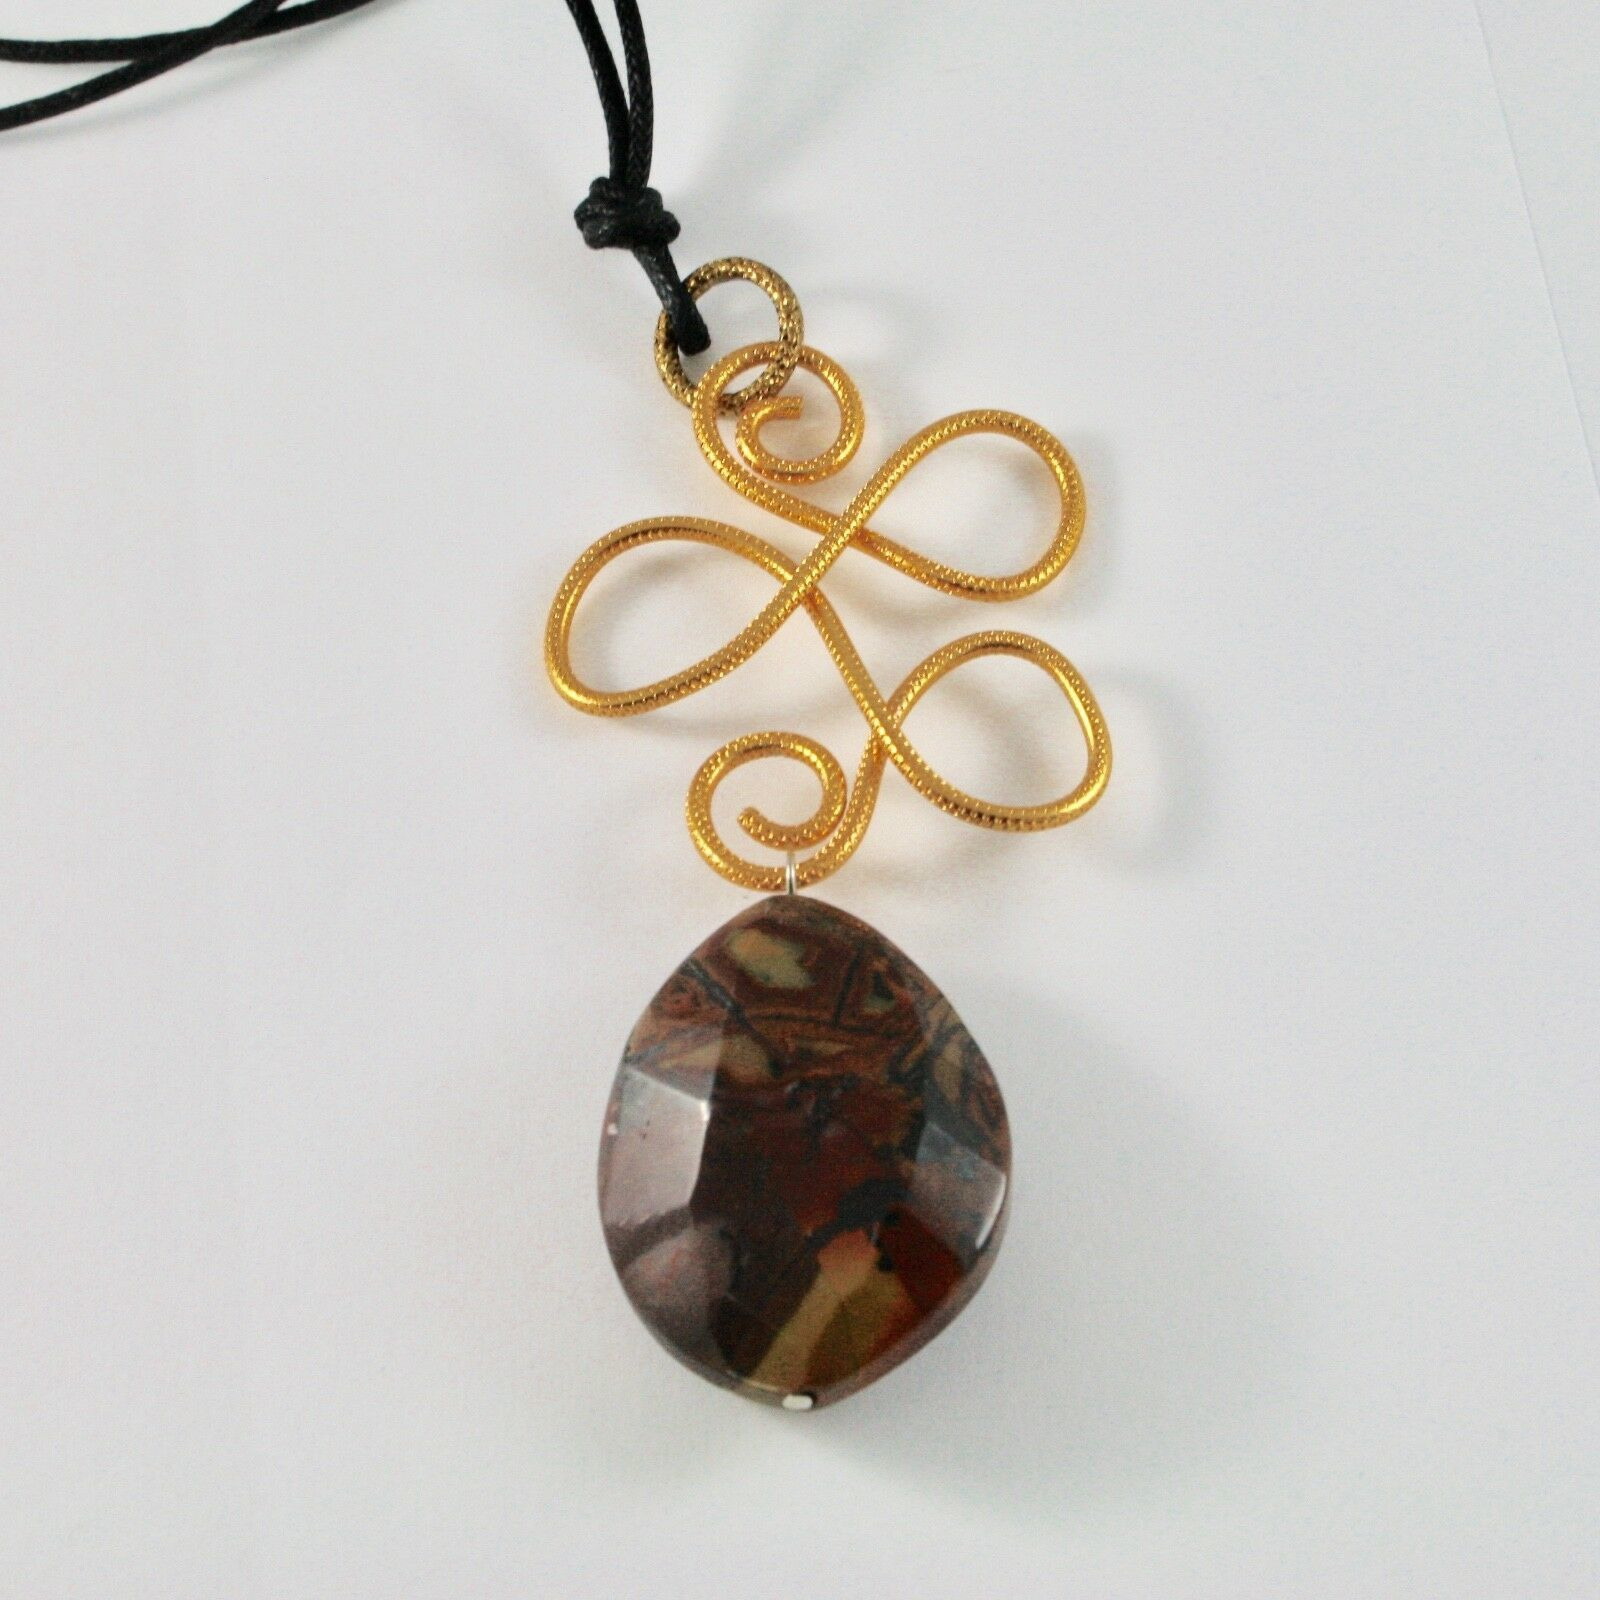 Pendant Aluminum With Jasper And Cord Waxed Black